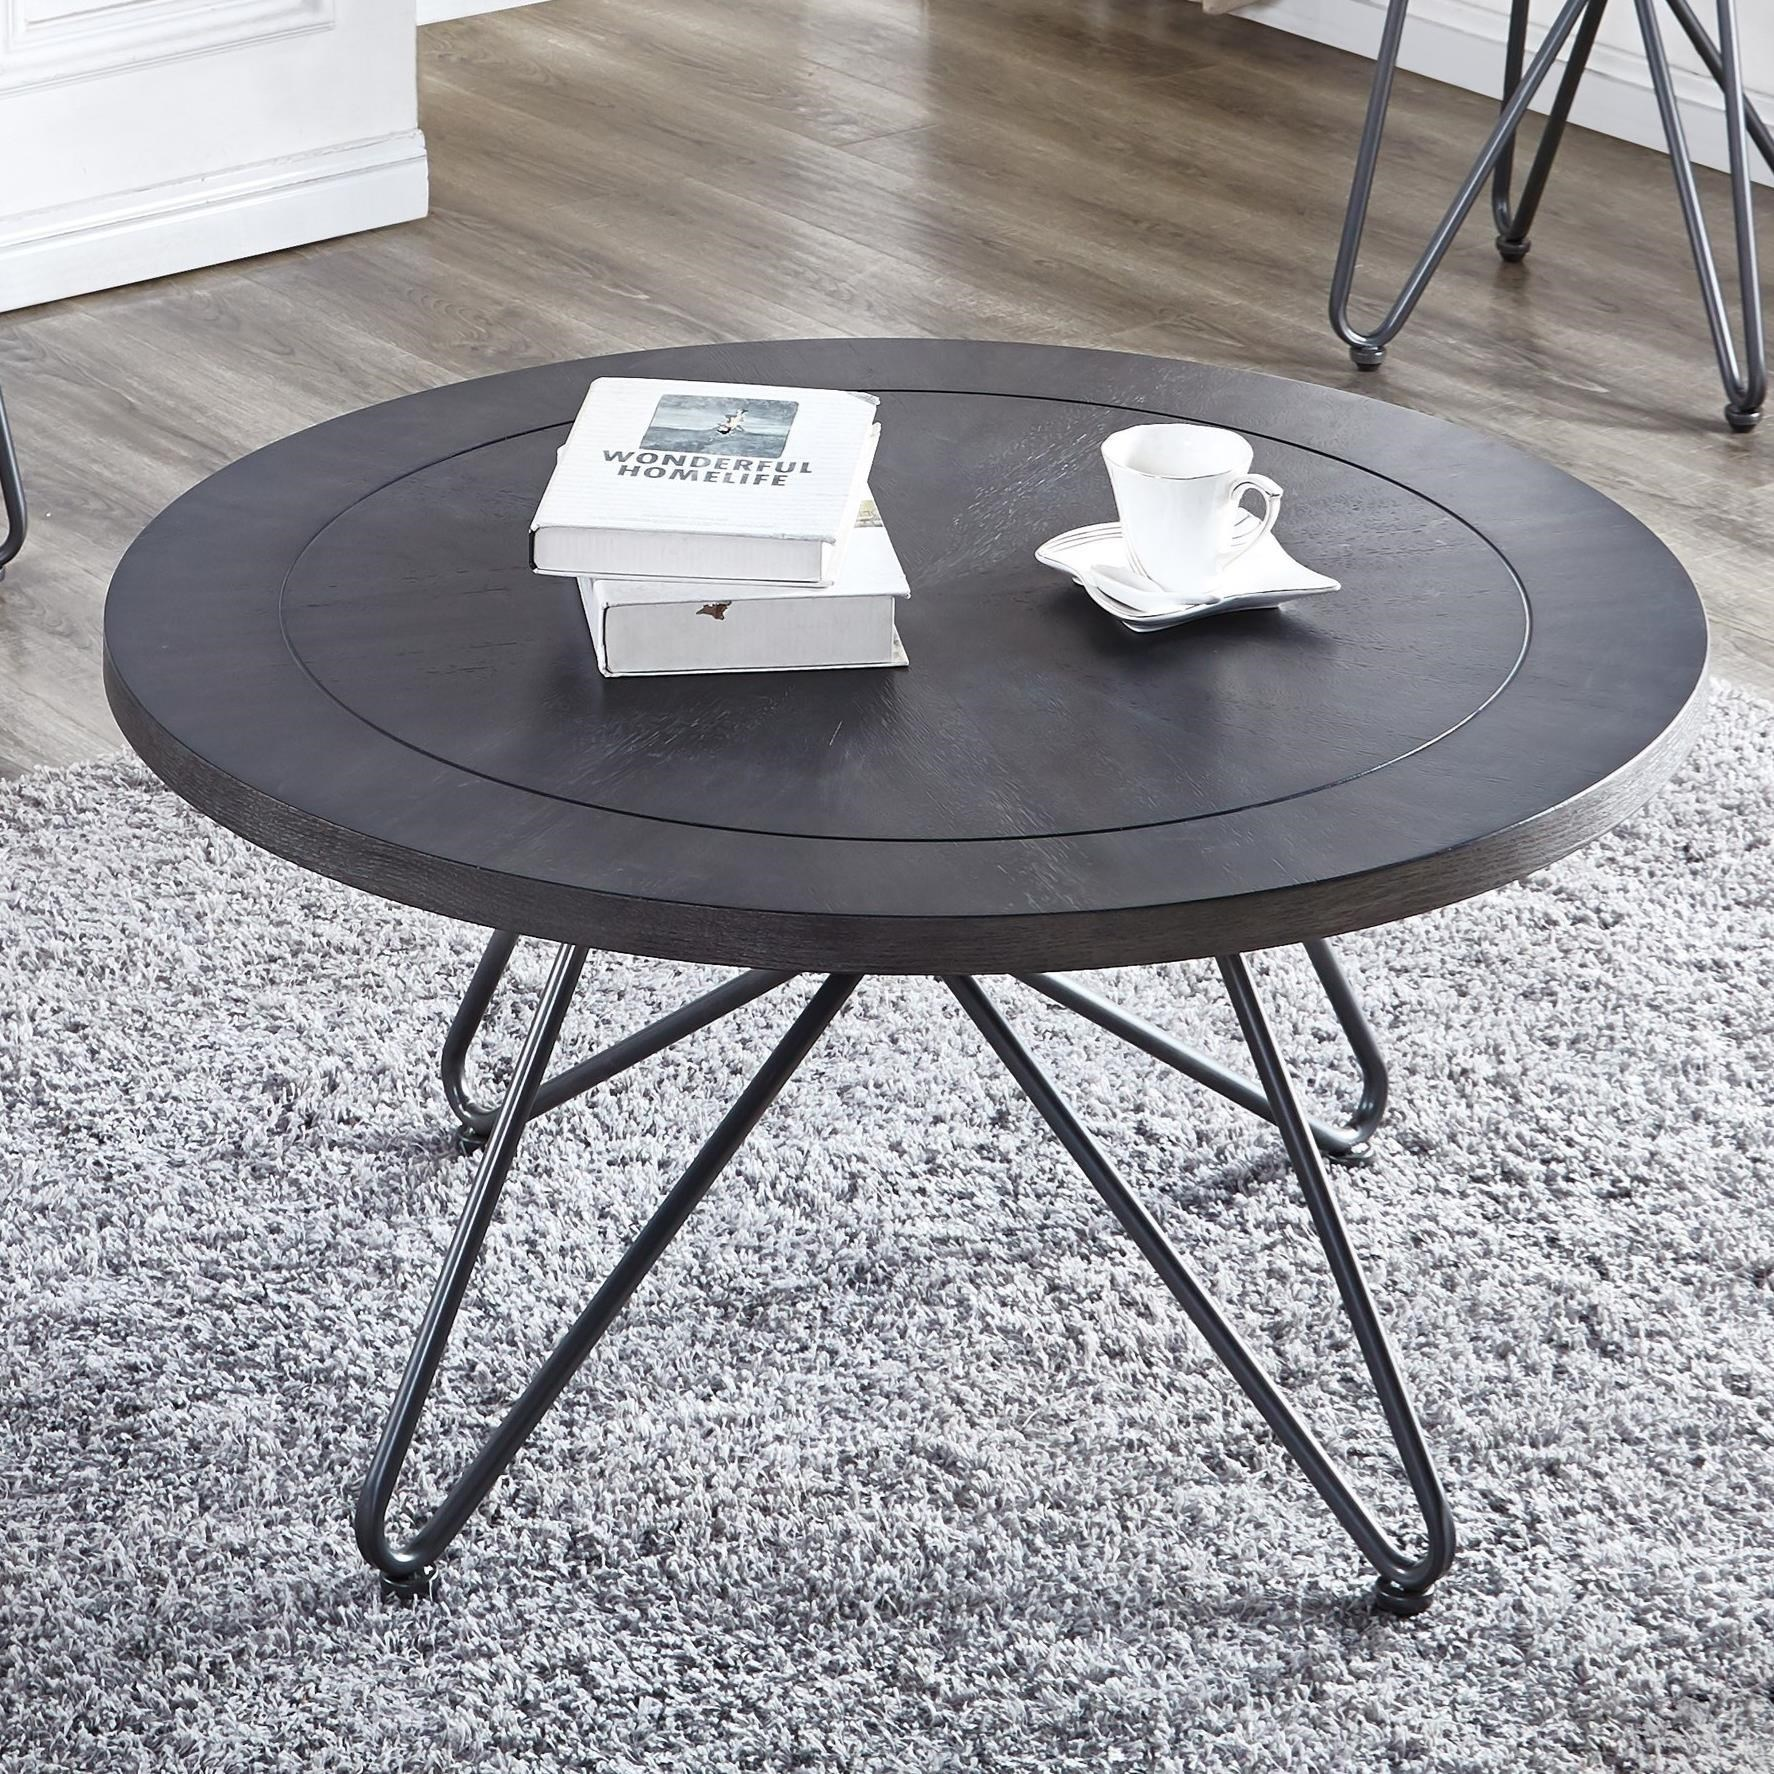 Dudley Round Cocktail Table